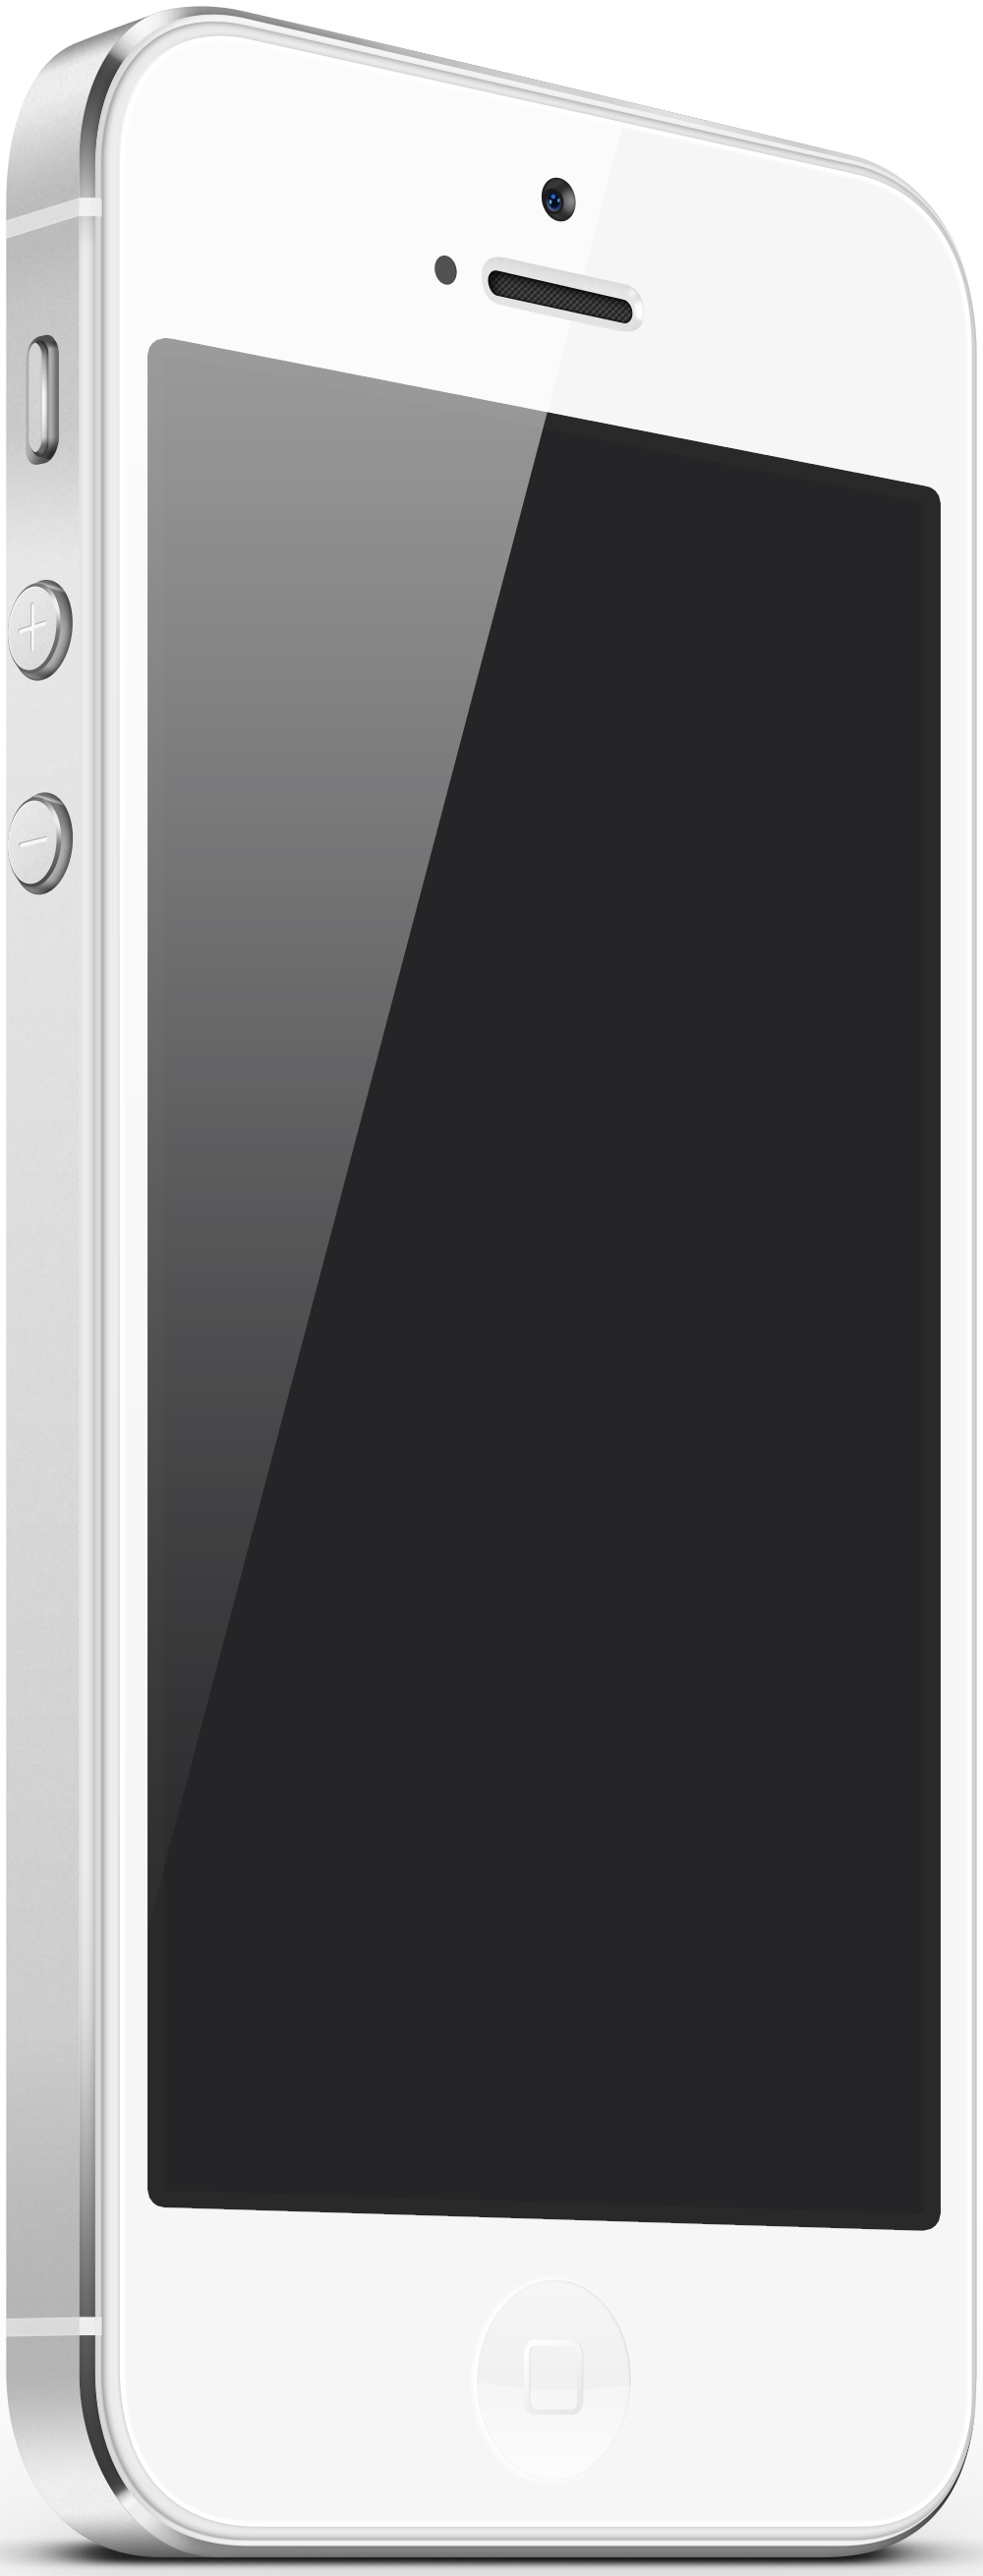 File:iPhone5white.png - Wikimedia Commons